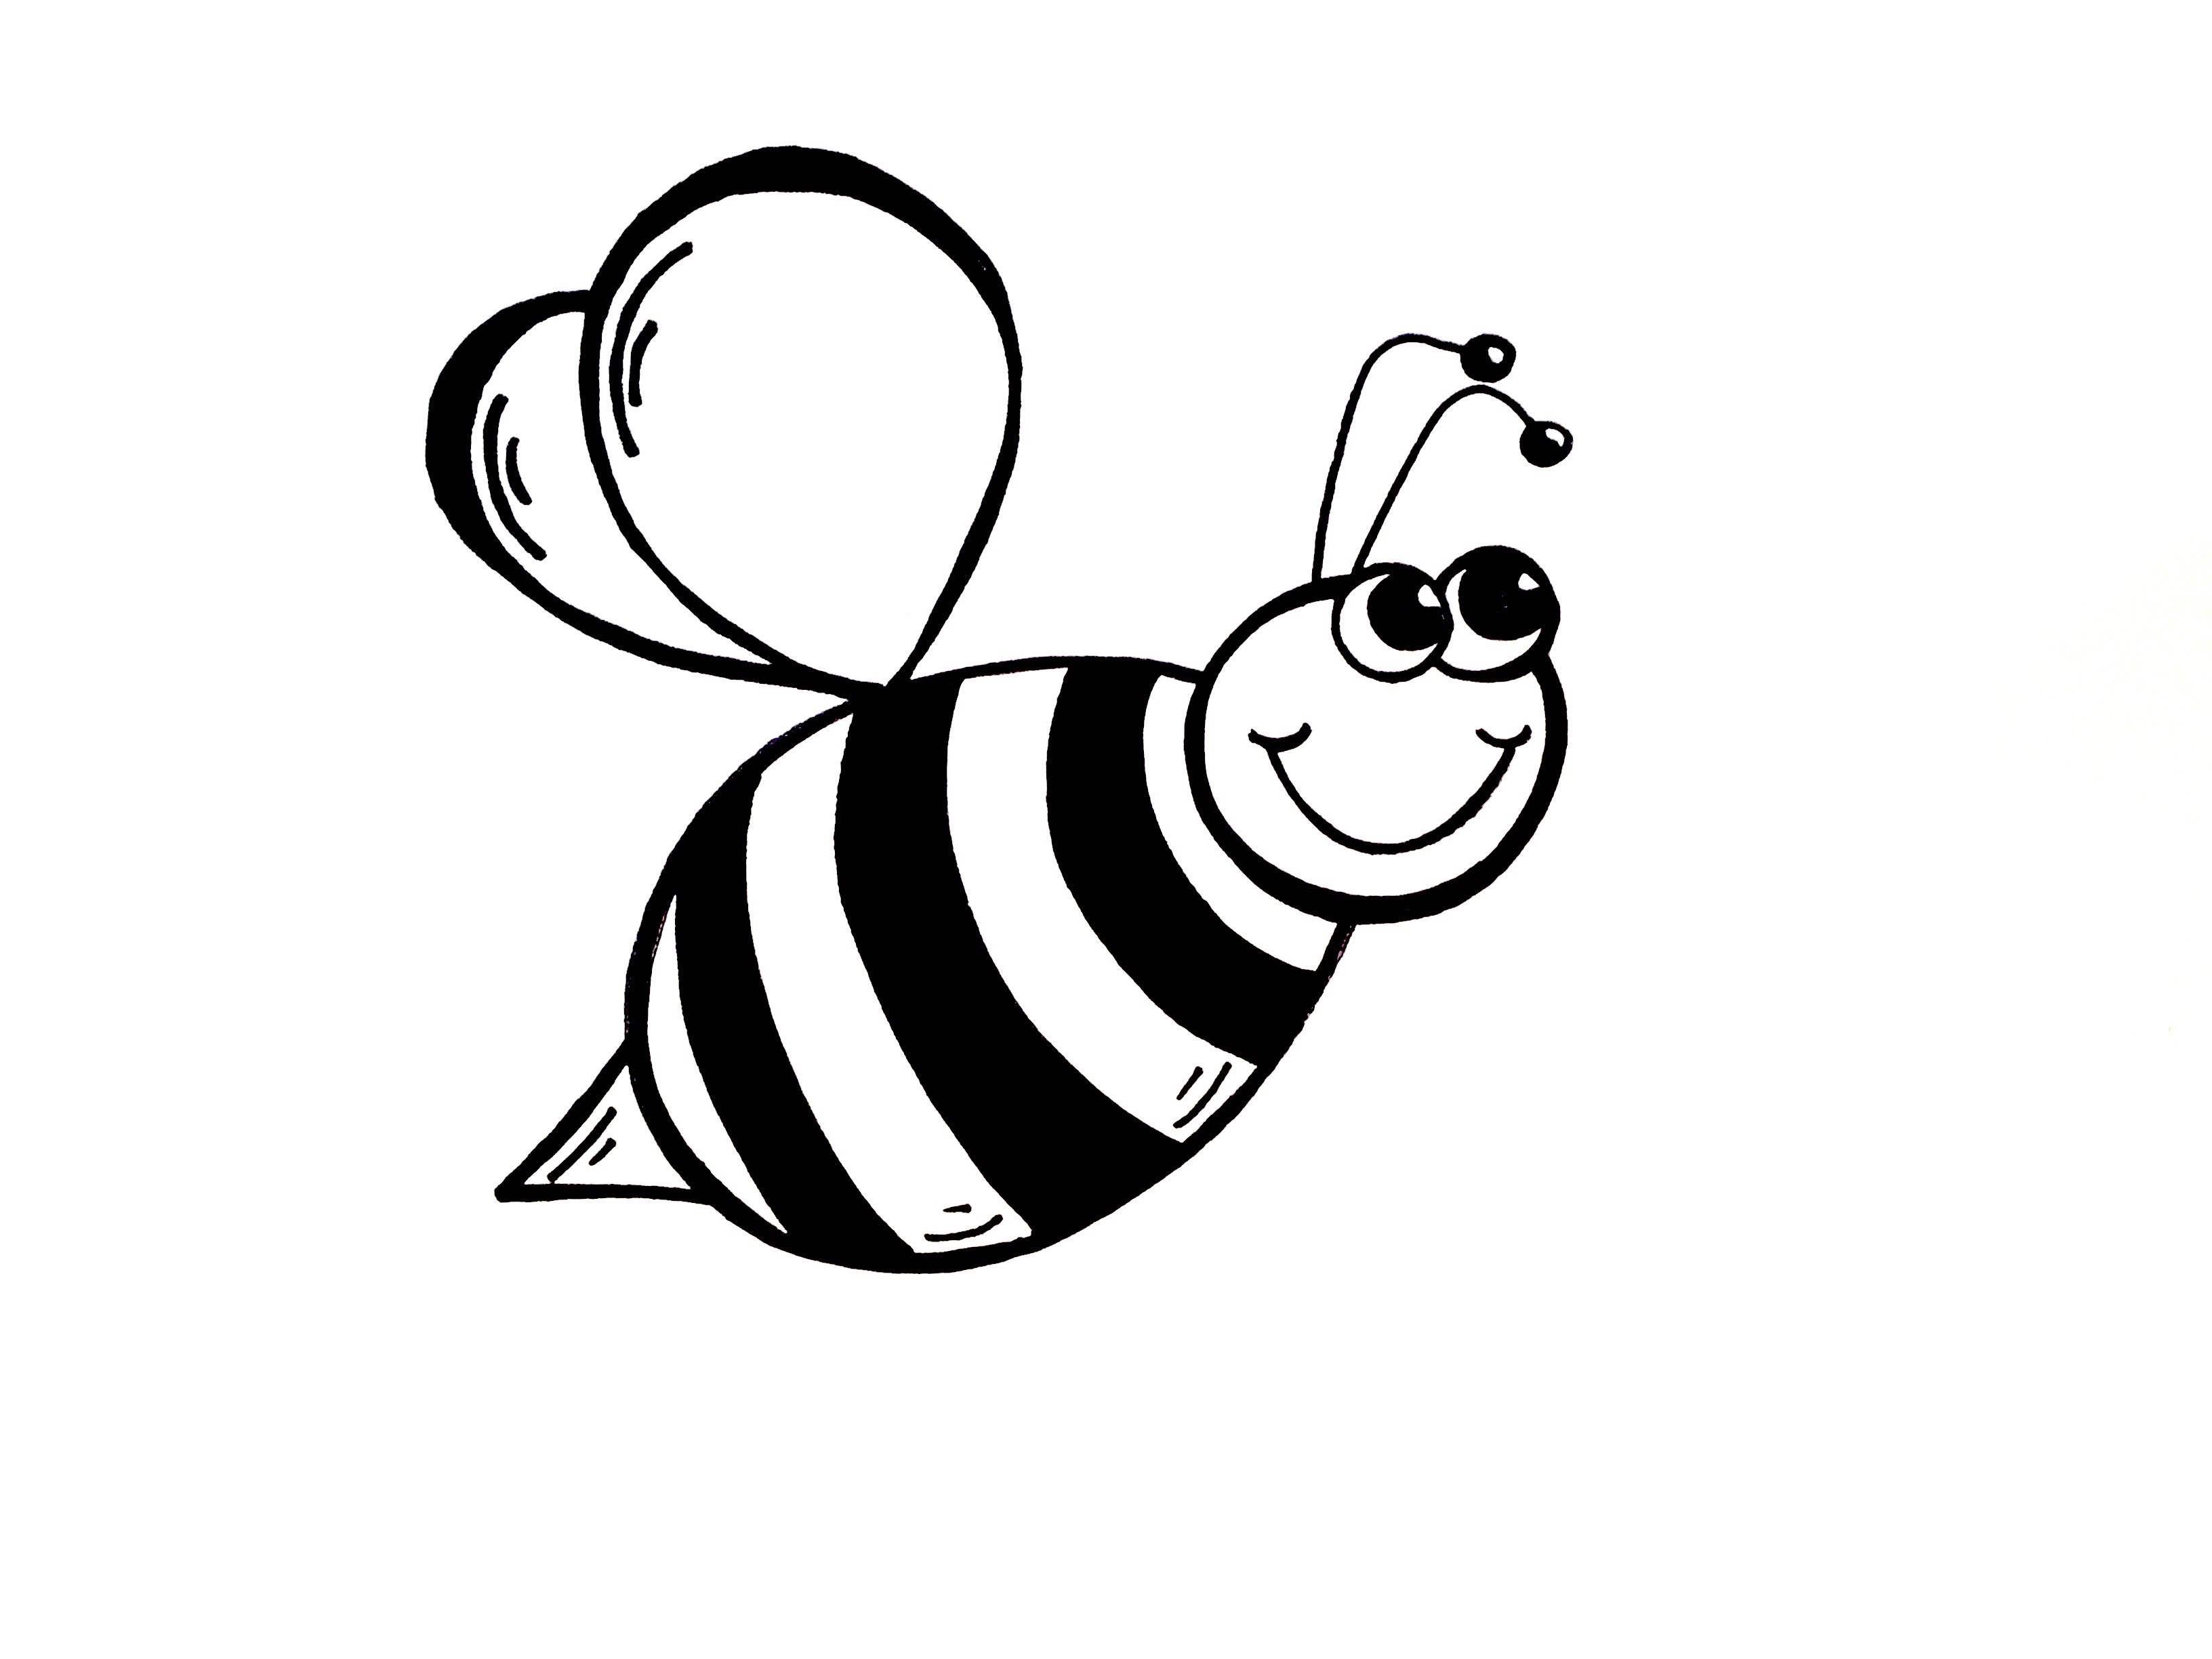 Bumble Bee Drawing at GetDrawings.com | Free for personal use Bumble ...